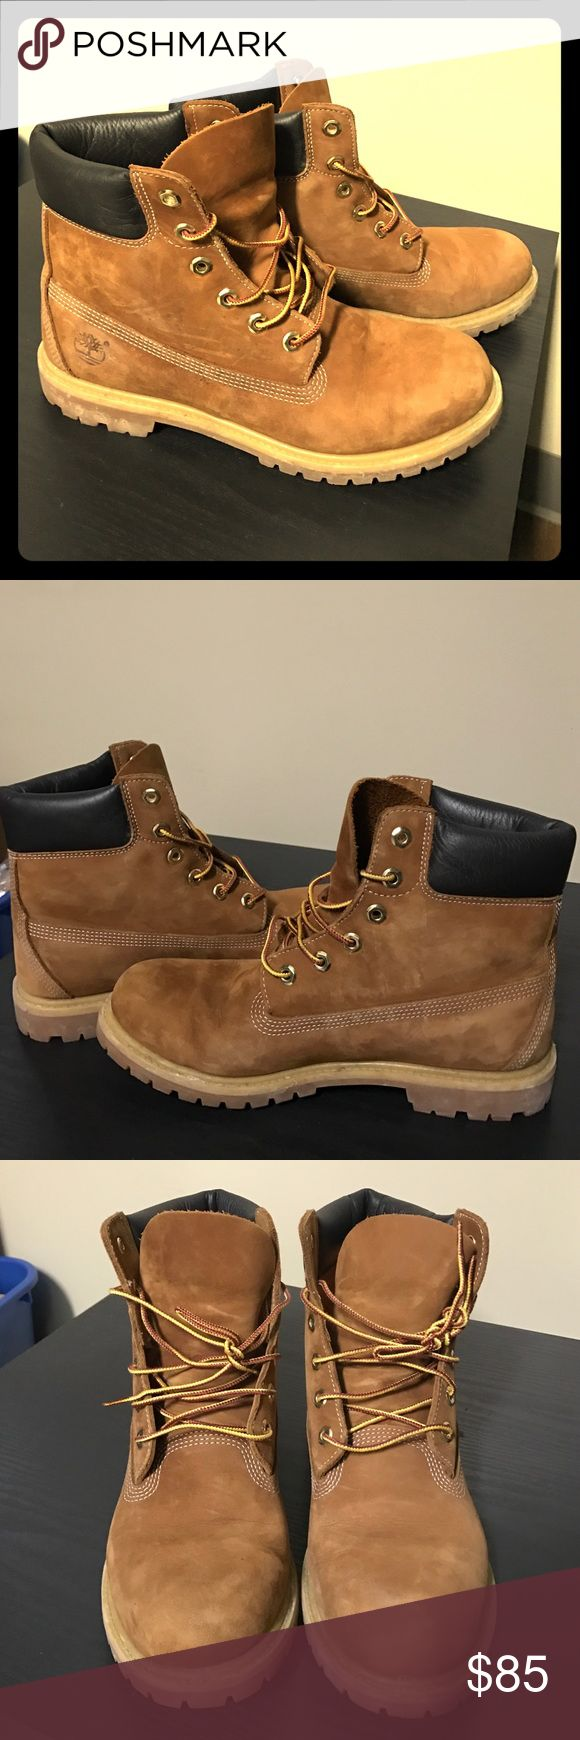 Women's 6-inch premium waterproof boots Rust nubuck, slight wear but still in great condition, great for winter! Timberland Shoes